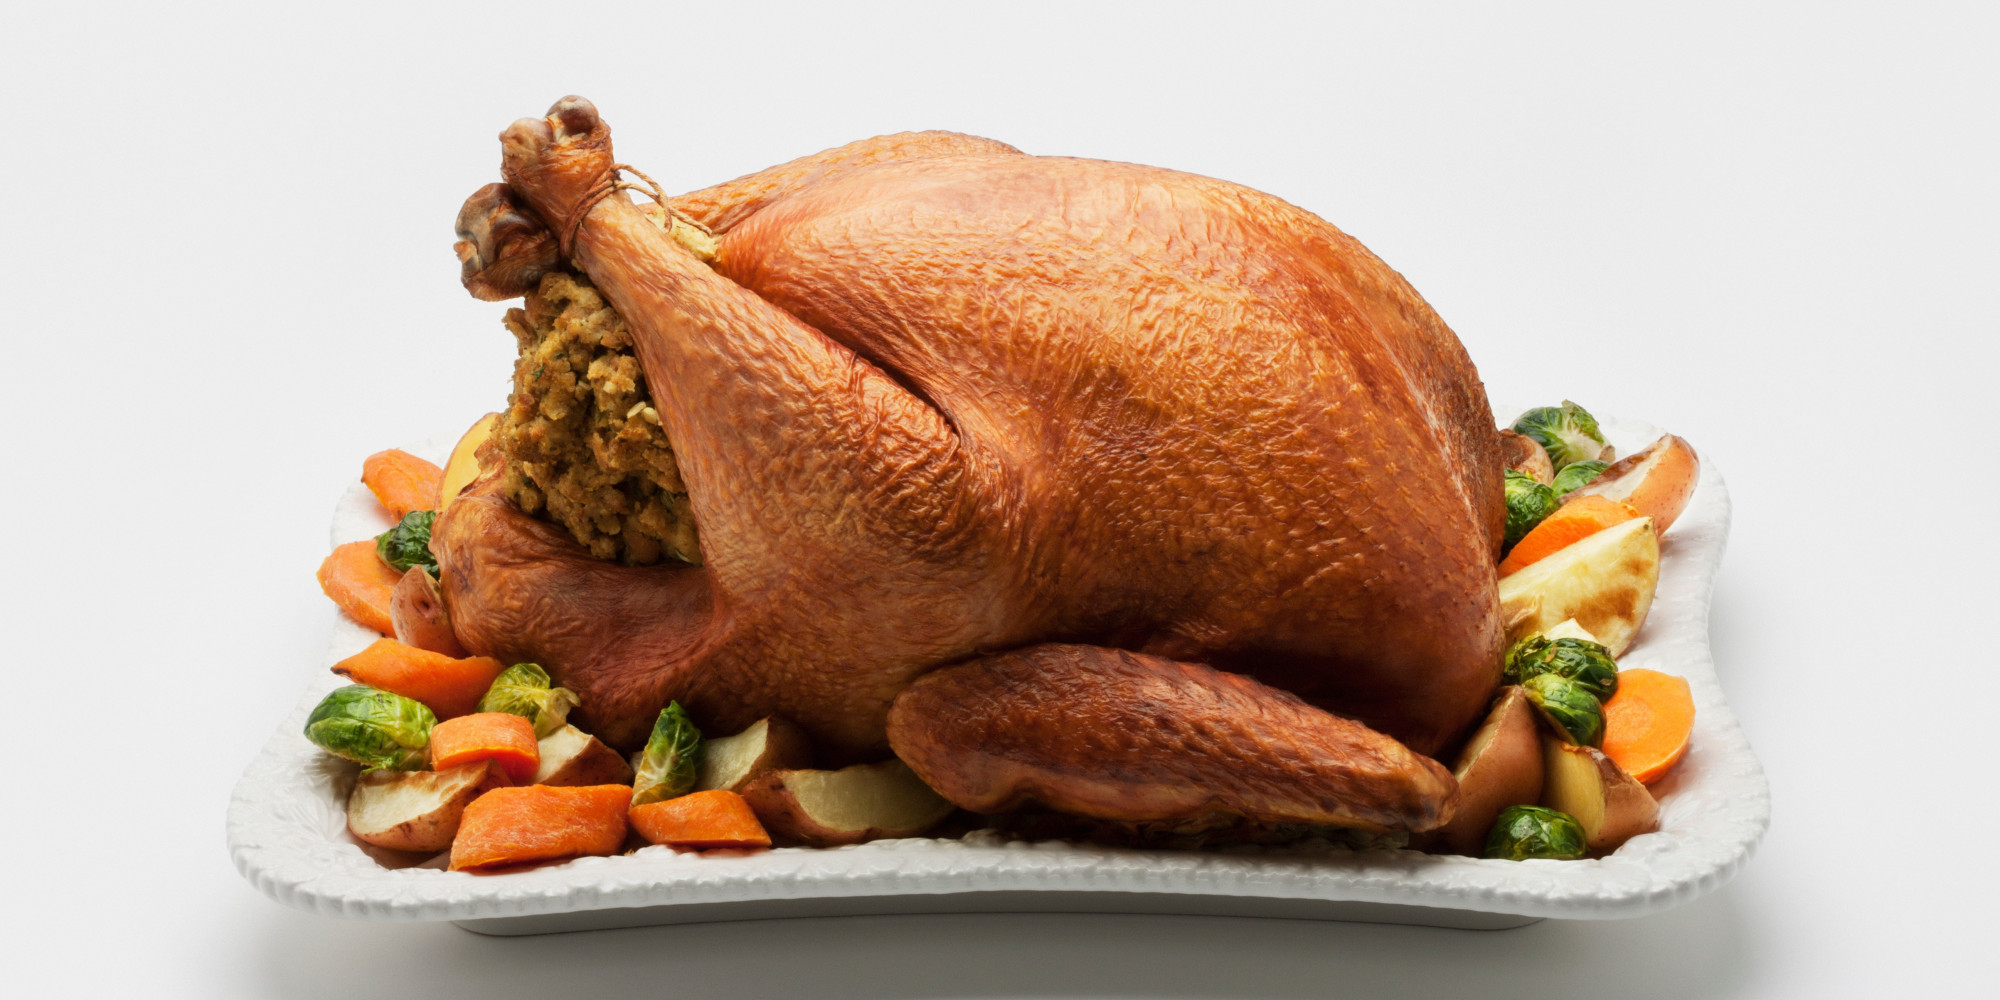 Picture Of Thanksgiving Turkey  Tryptophan Making You Sleepy Is A Big Fat Lie